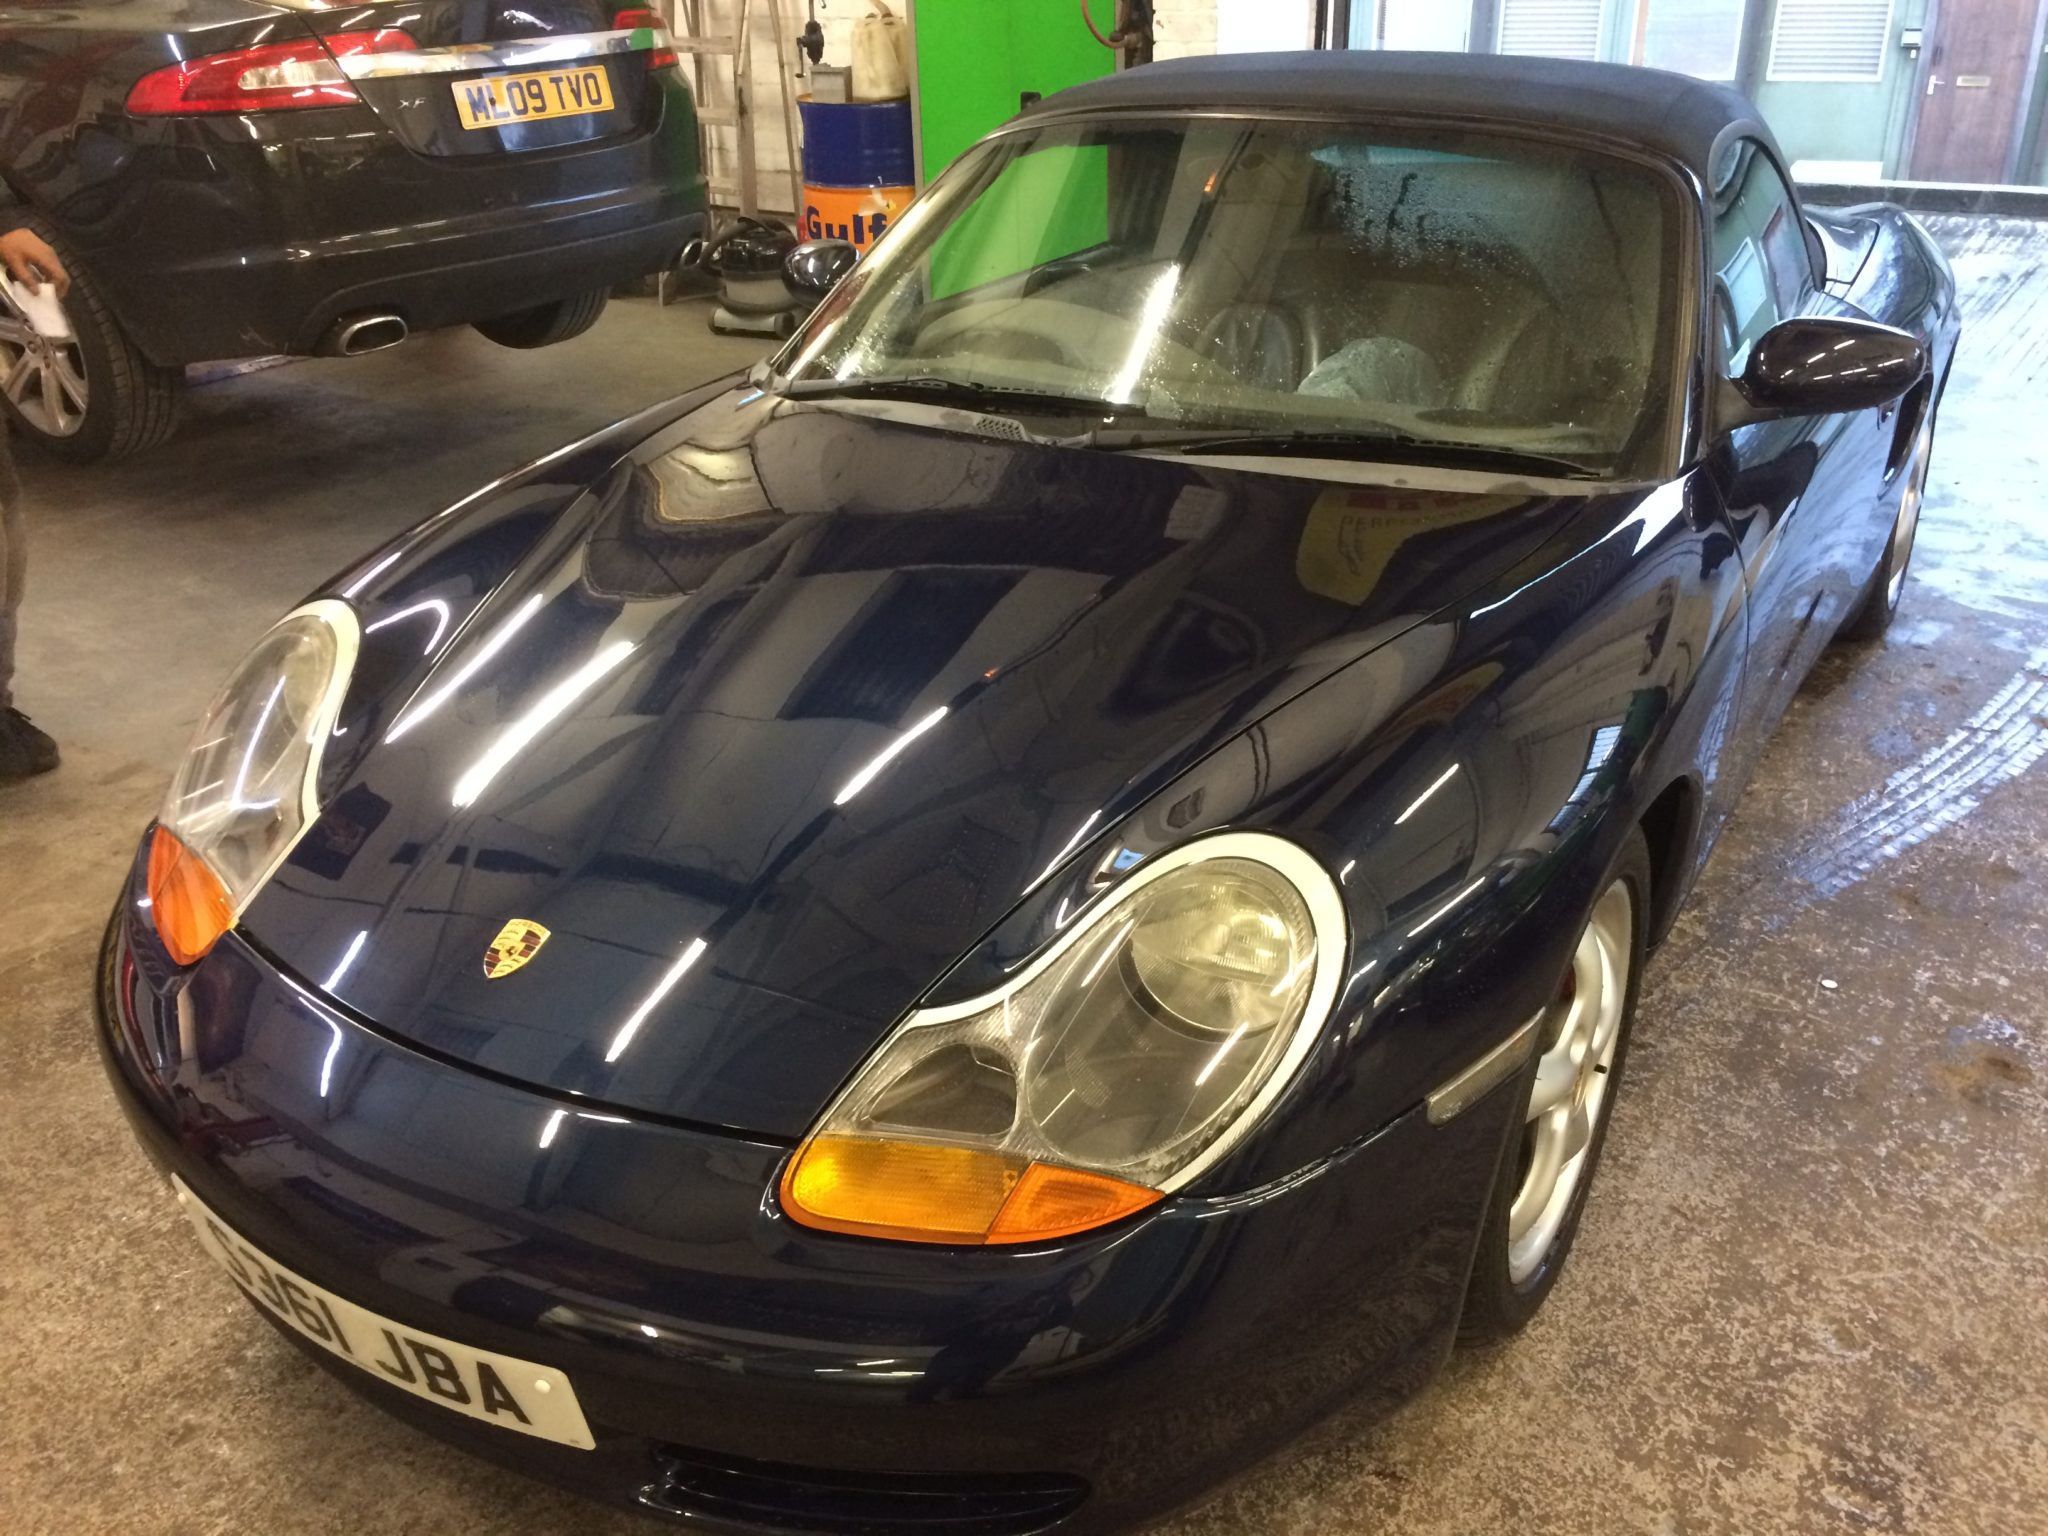 For Sale. £3,800. Our Own Boxster 2.5 In Stunning Metallic Blue